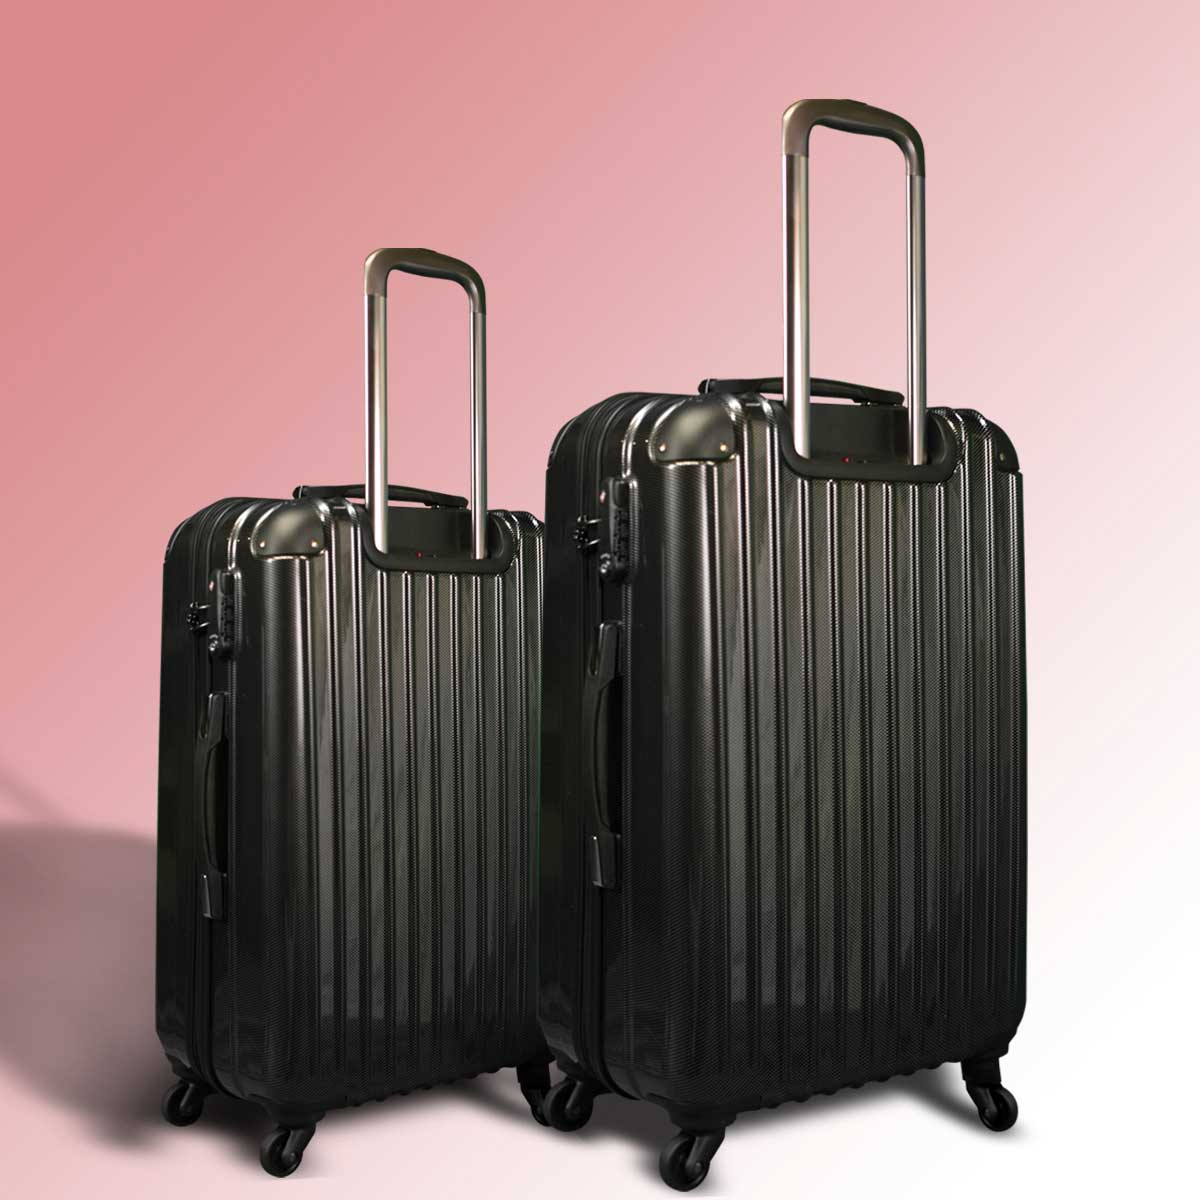 Available in two sizes, a 20″ carry-on and 24″ upright, ThermalStrike luggage is TSA and FAA compliant and features an ultra-thin heating system with an integrated thermometer.